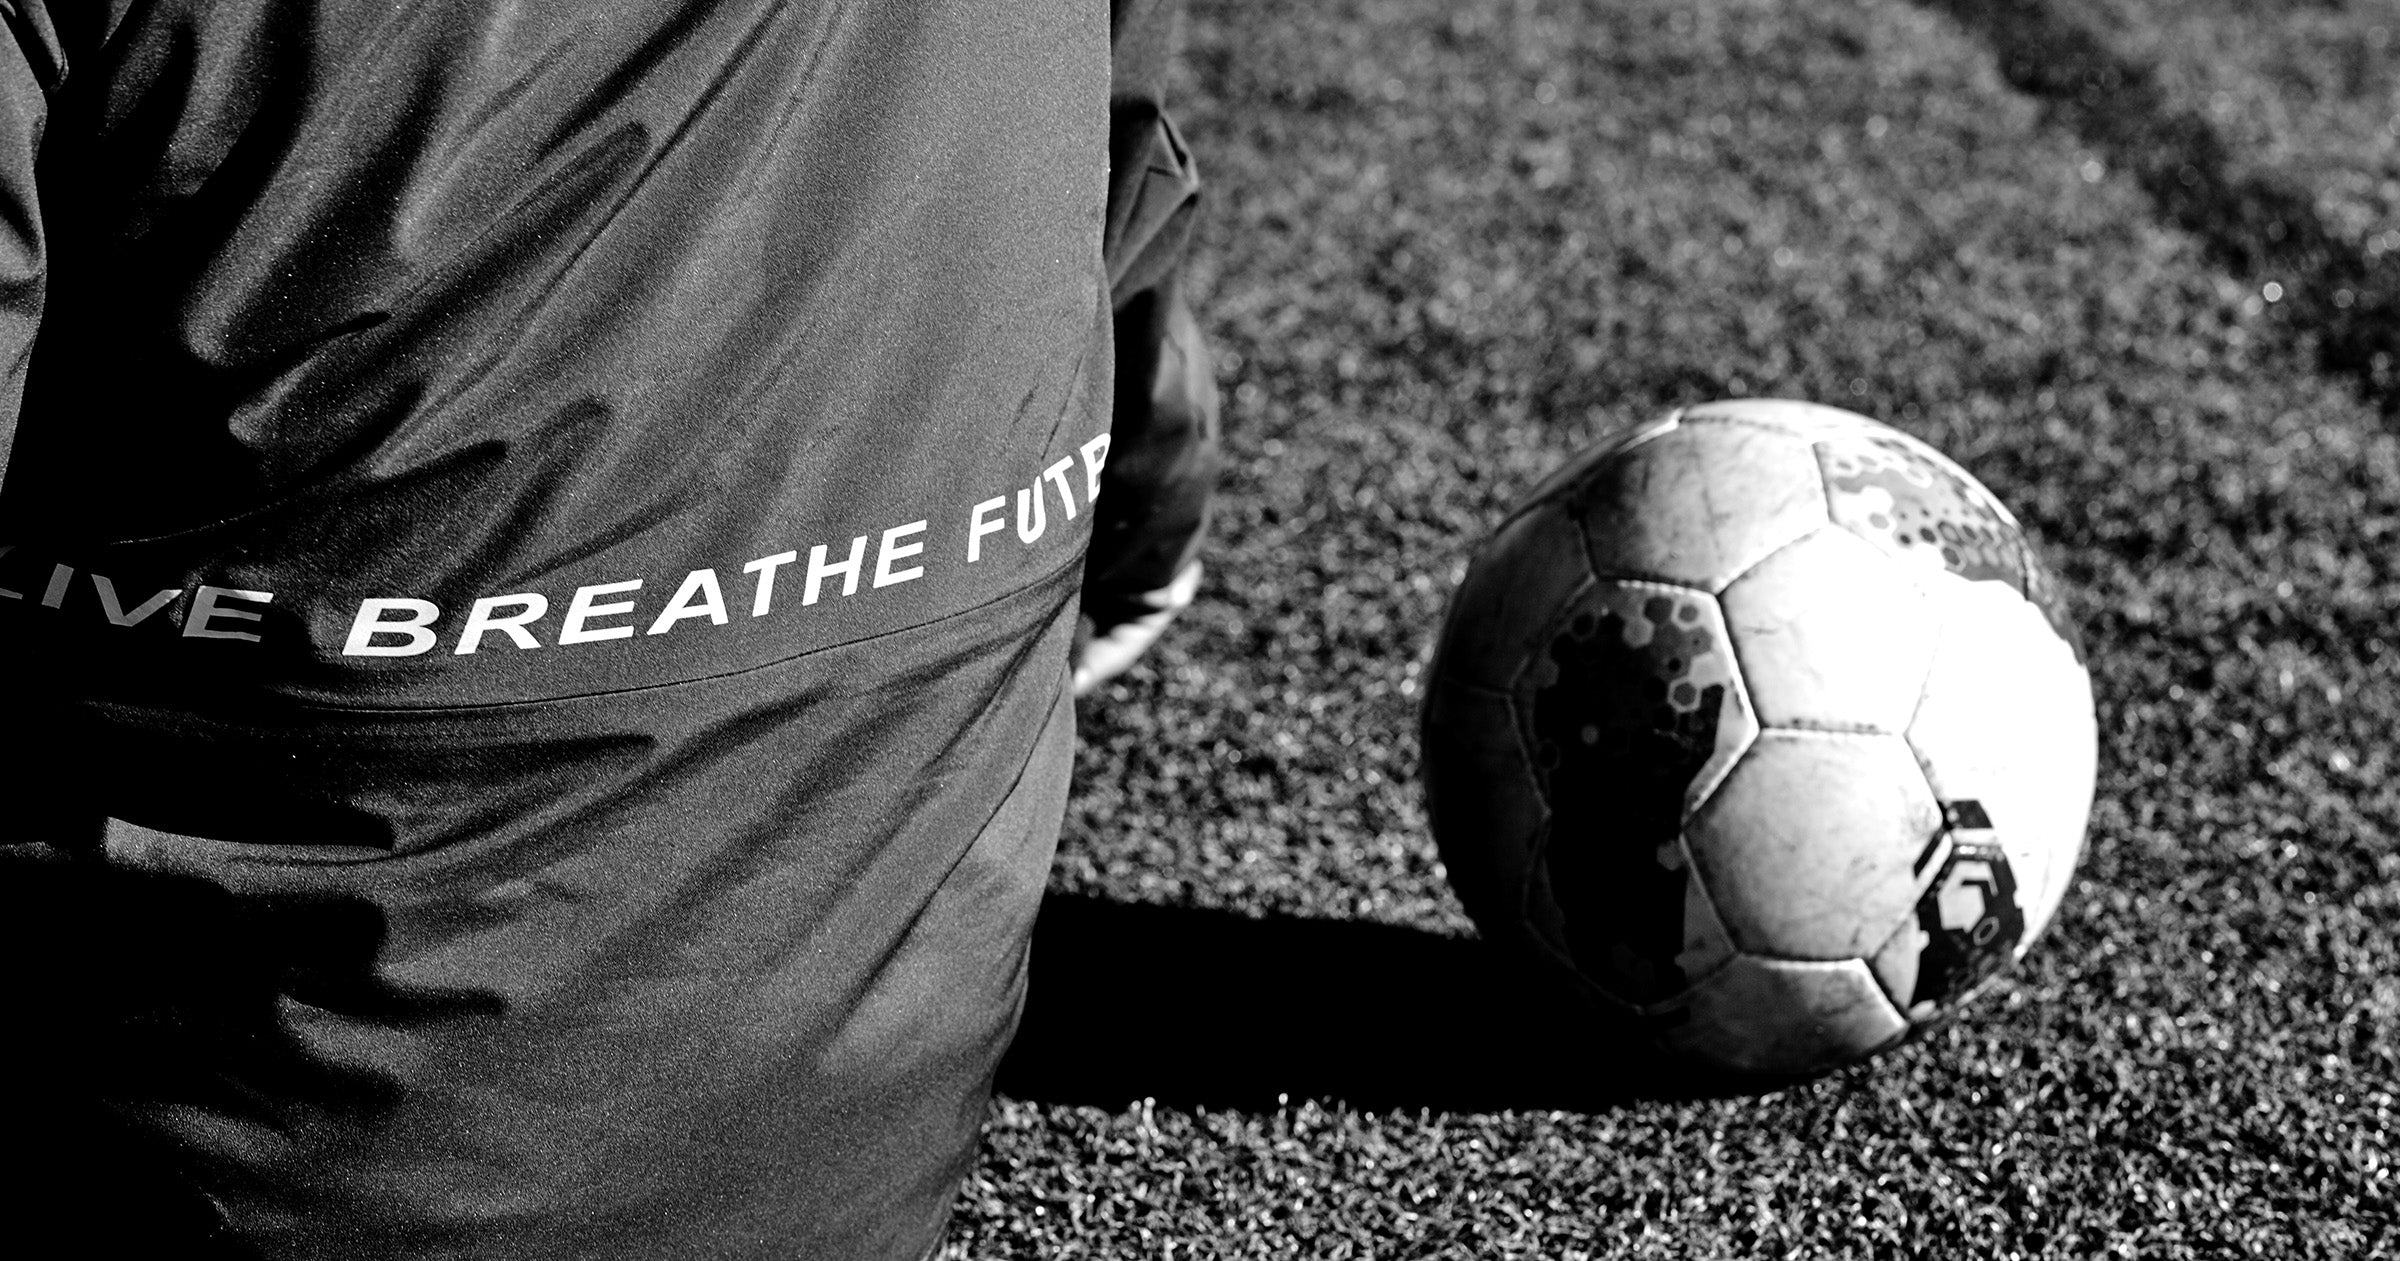 LIVE BREATHE FUTBOL ABOUT US